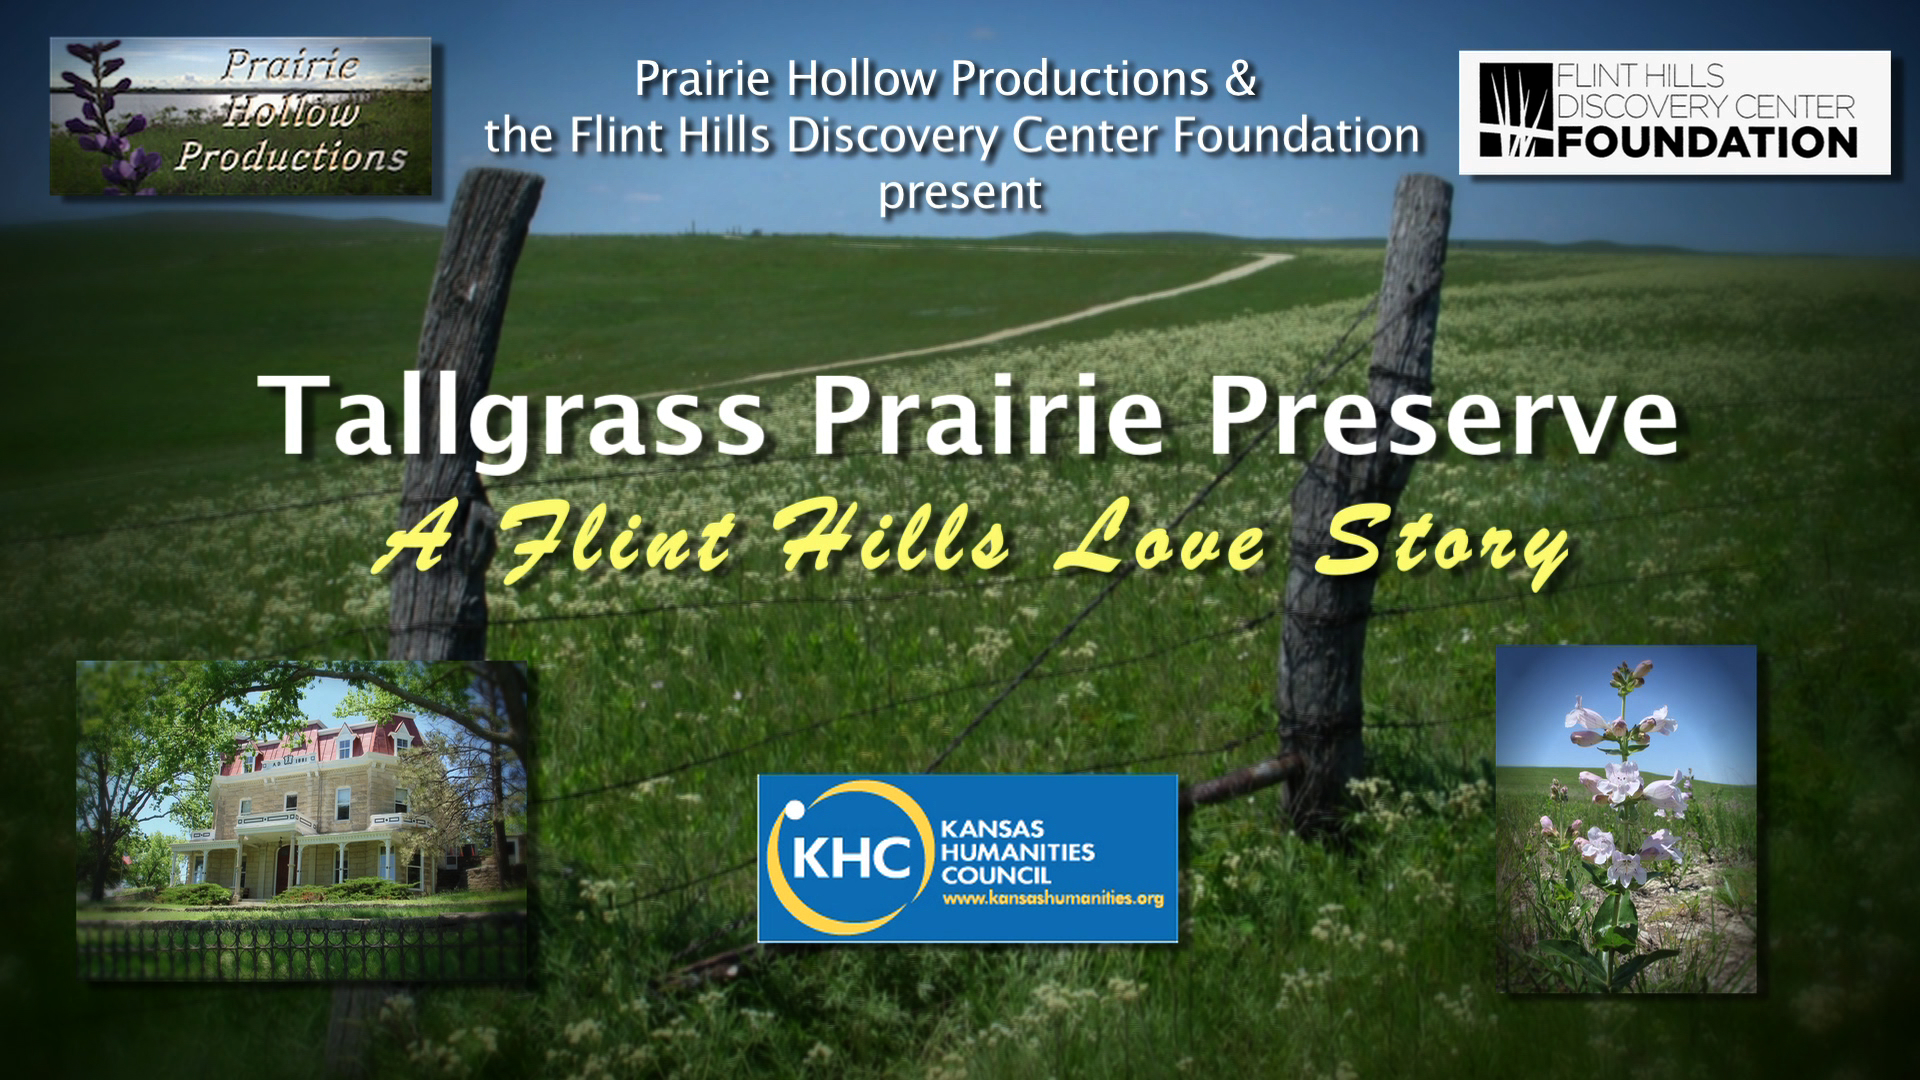 We're pleased to announce that the    Kansas Humanities Council    has provided a grant to support the production of our new documentary about the    Tallgrass Prairie National Preserve   , which we're producing in collaboration with the Flint Hills Discovery Center Foundation in Manhattan. The program will premiere in the Fall of 2016 in conjunction with the 20th anniversary of the preserve and the centennial of the National Park Service.